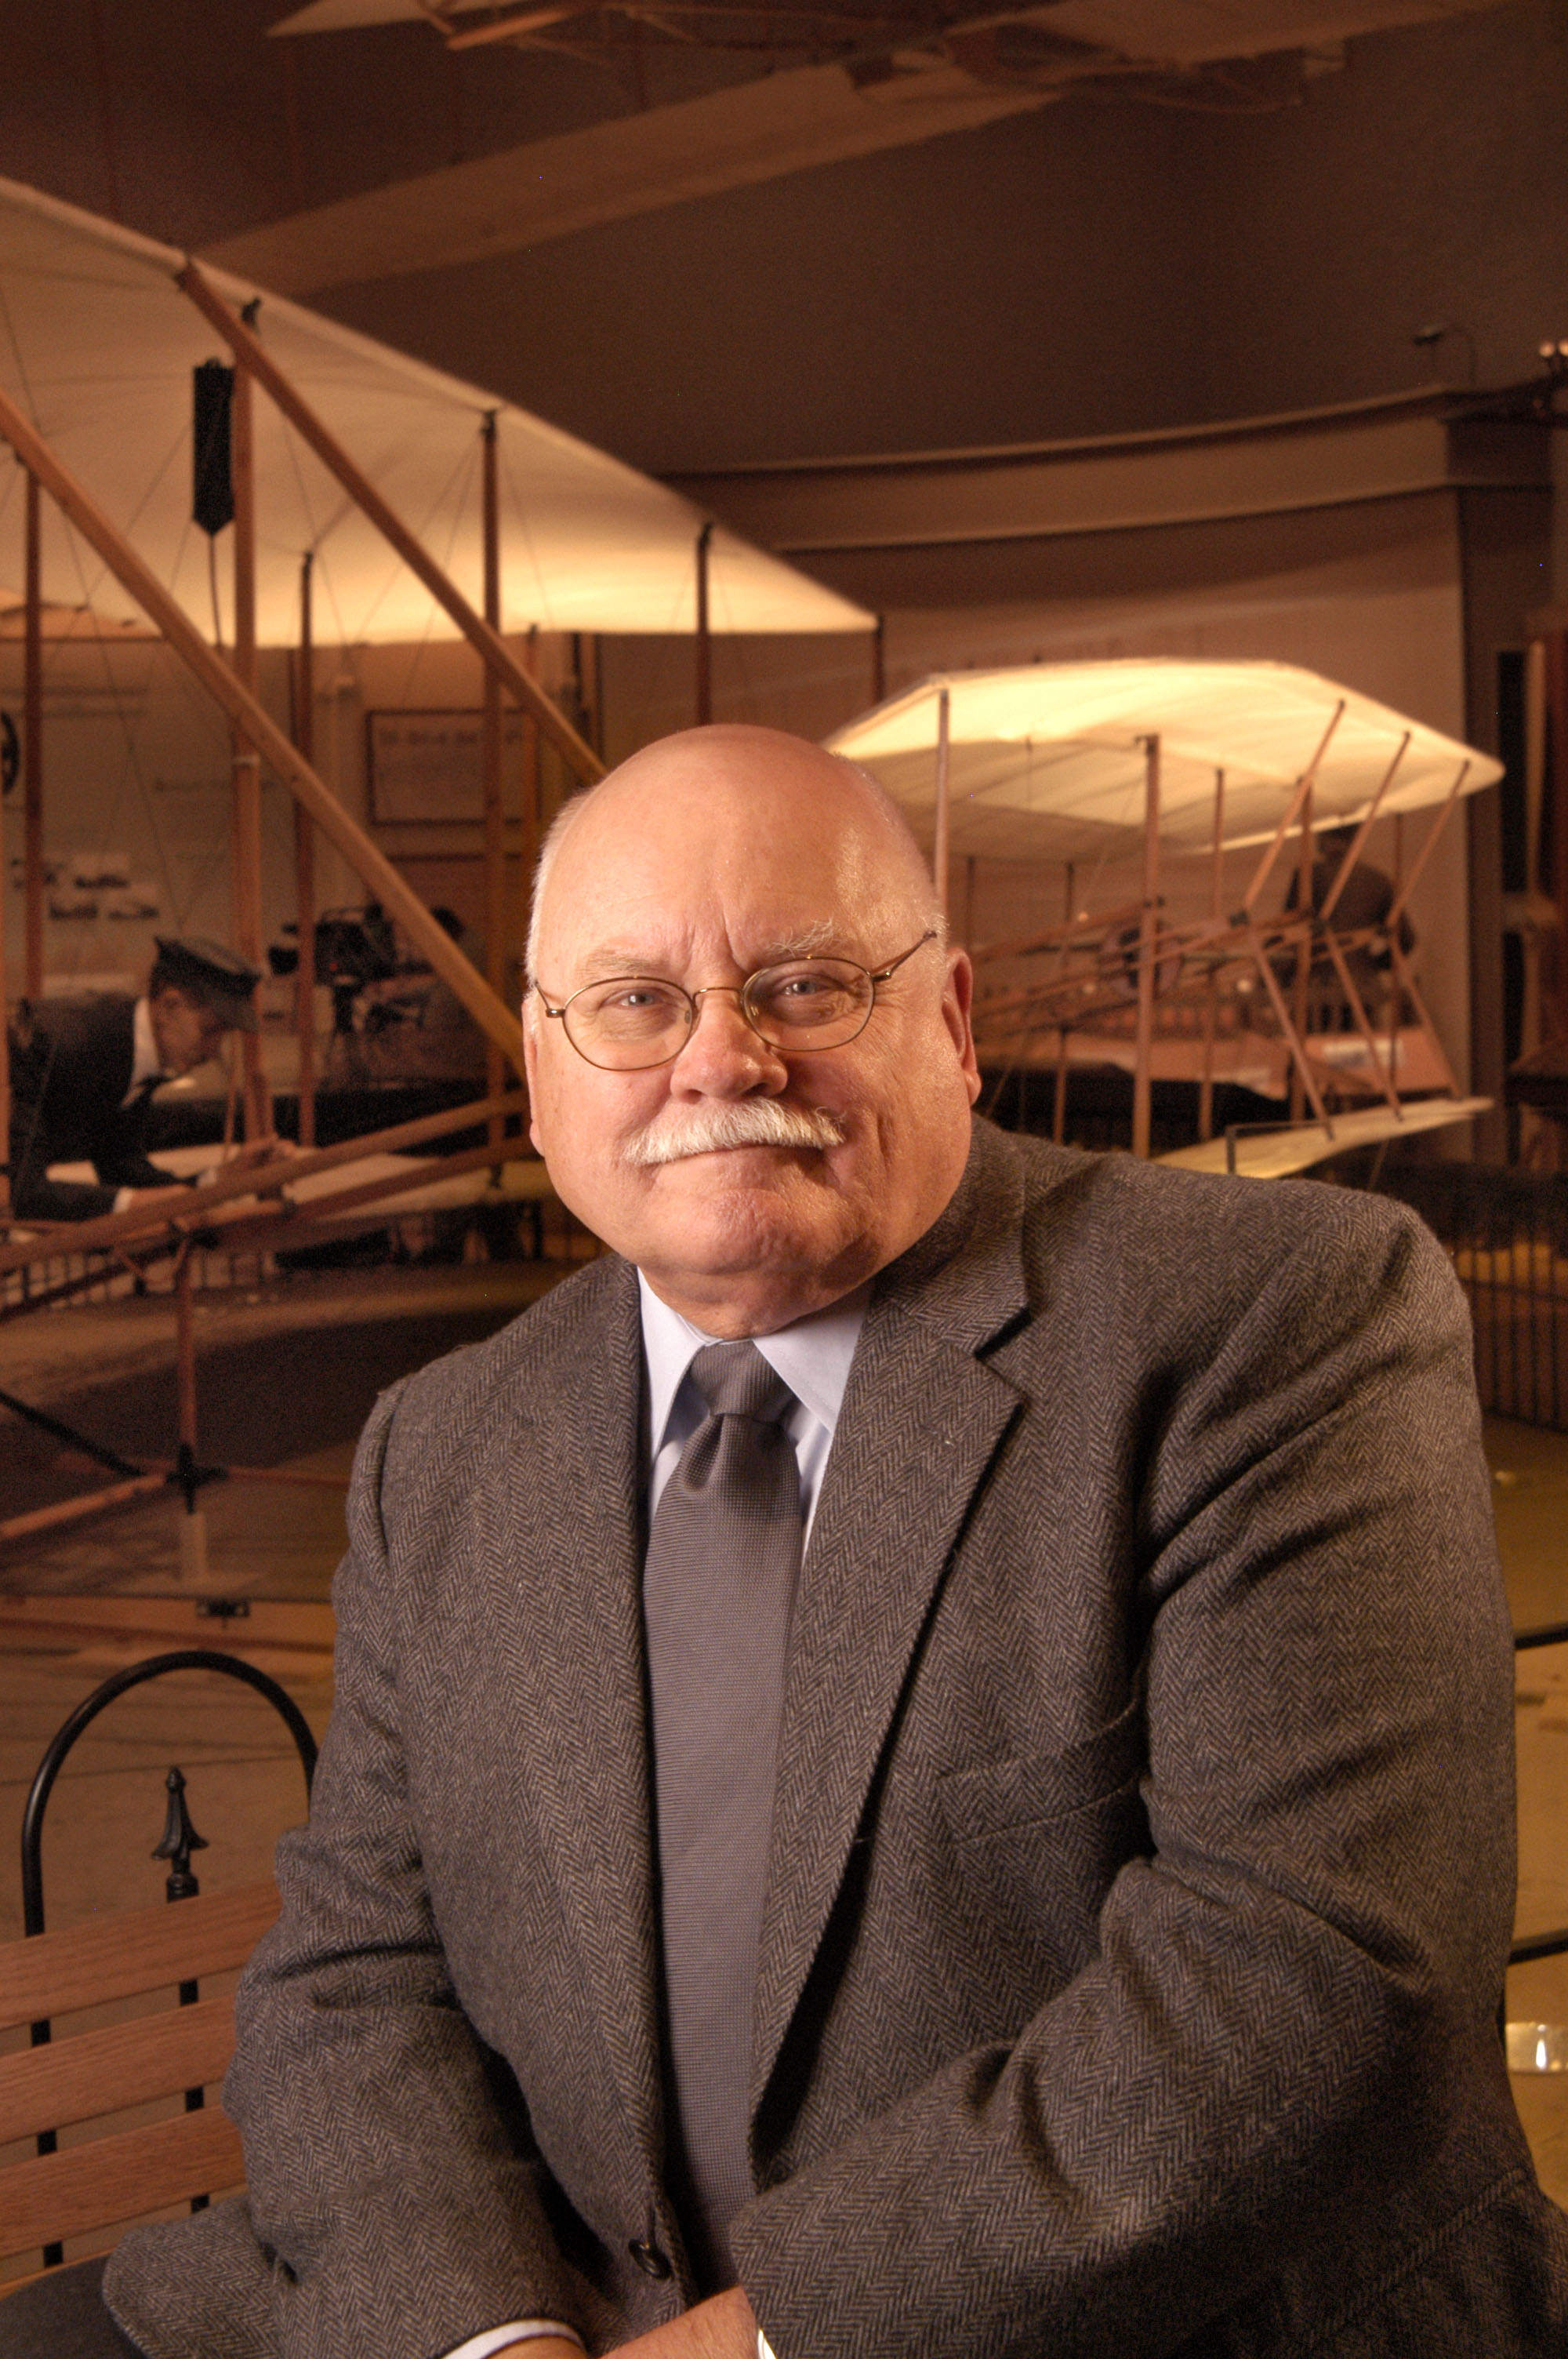 Tom Crouch, Senior Curator of Aeronautics at the National Air and Space Museum. Photo by Eric Long.